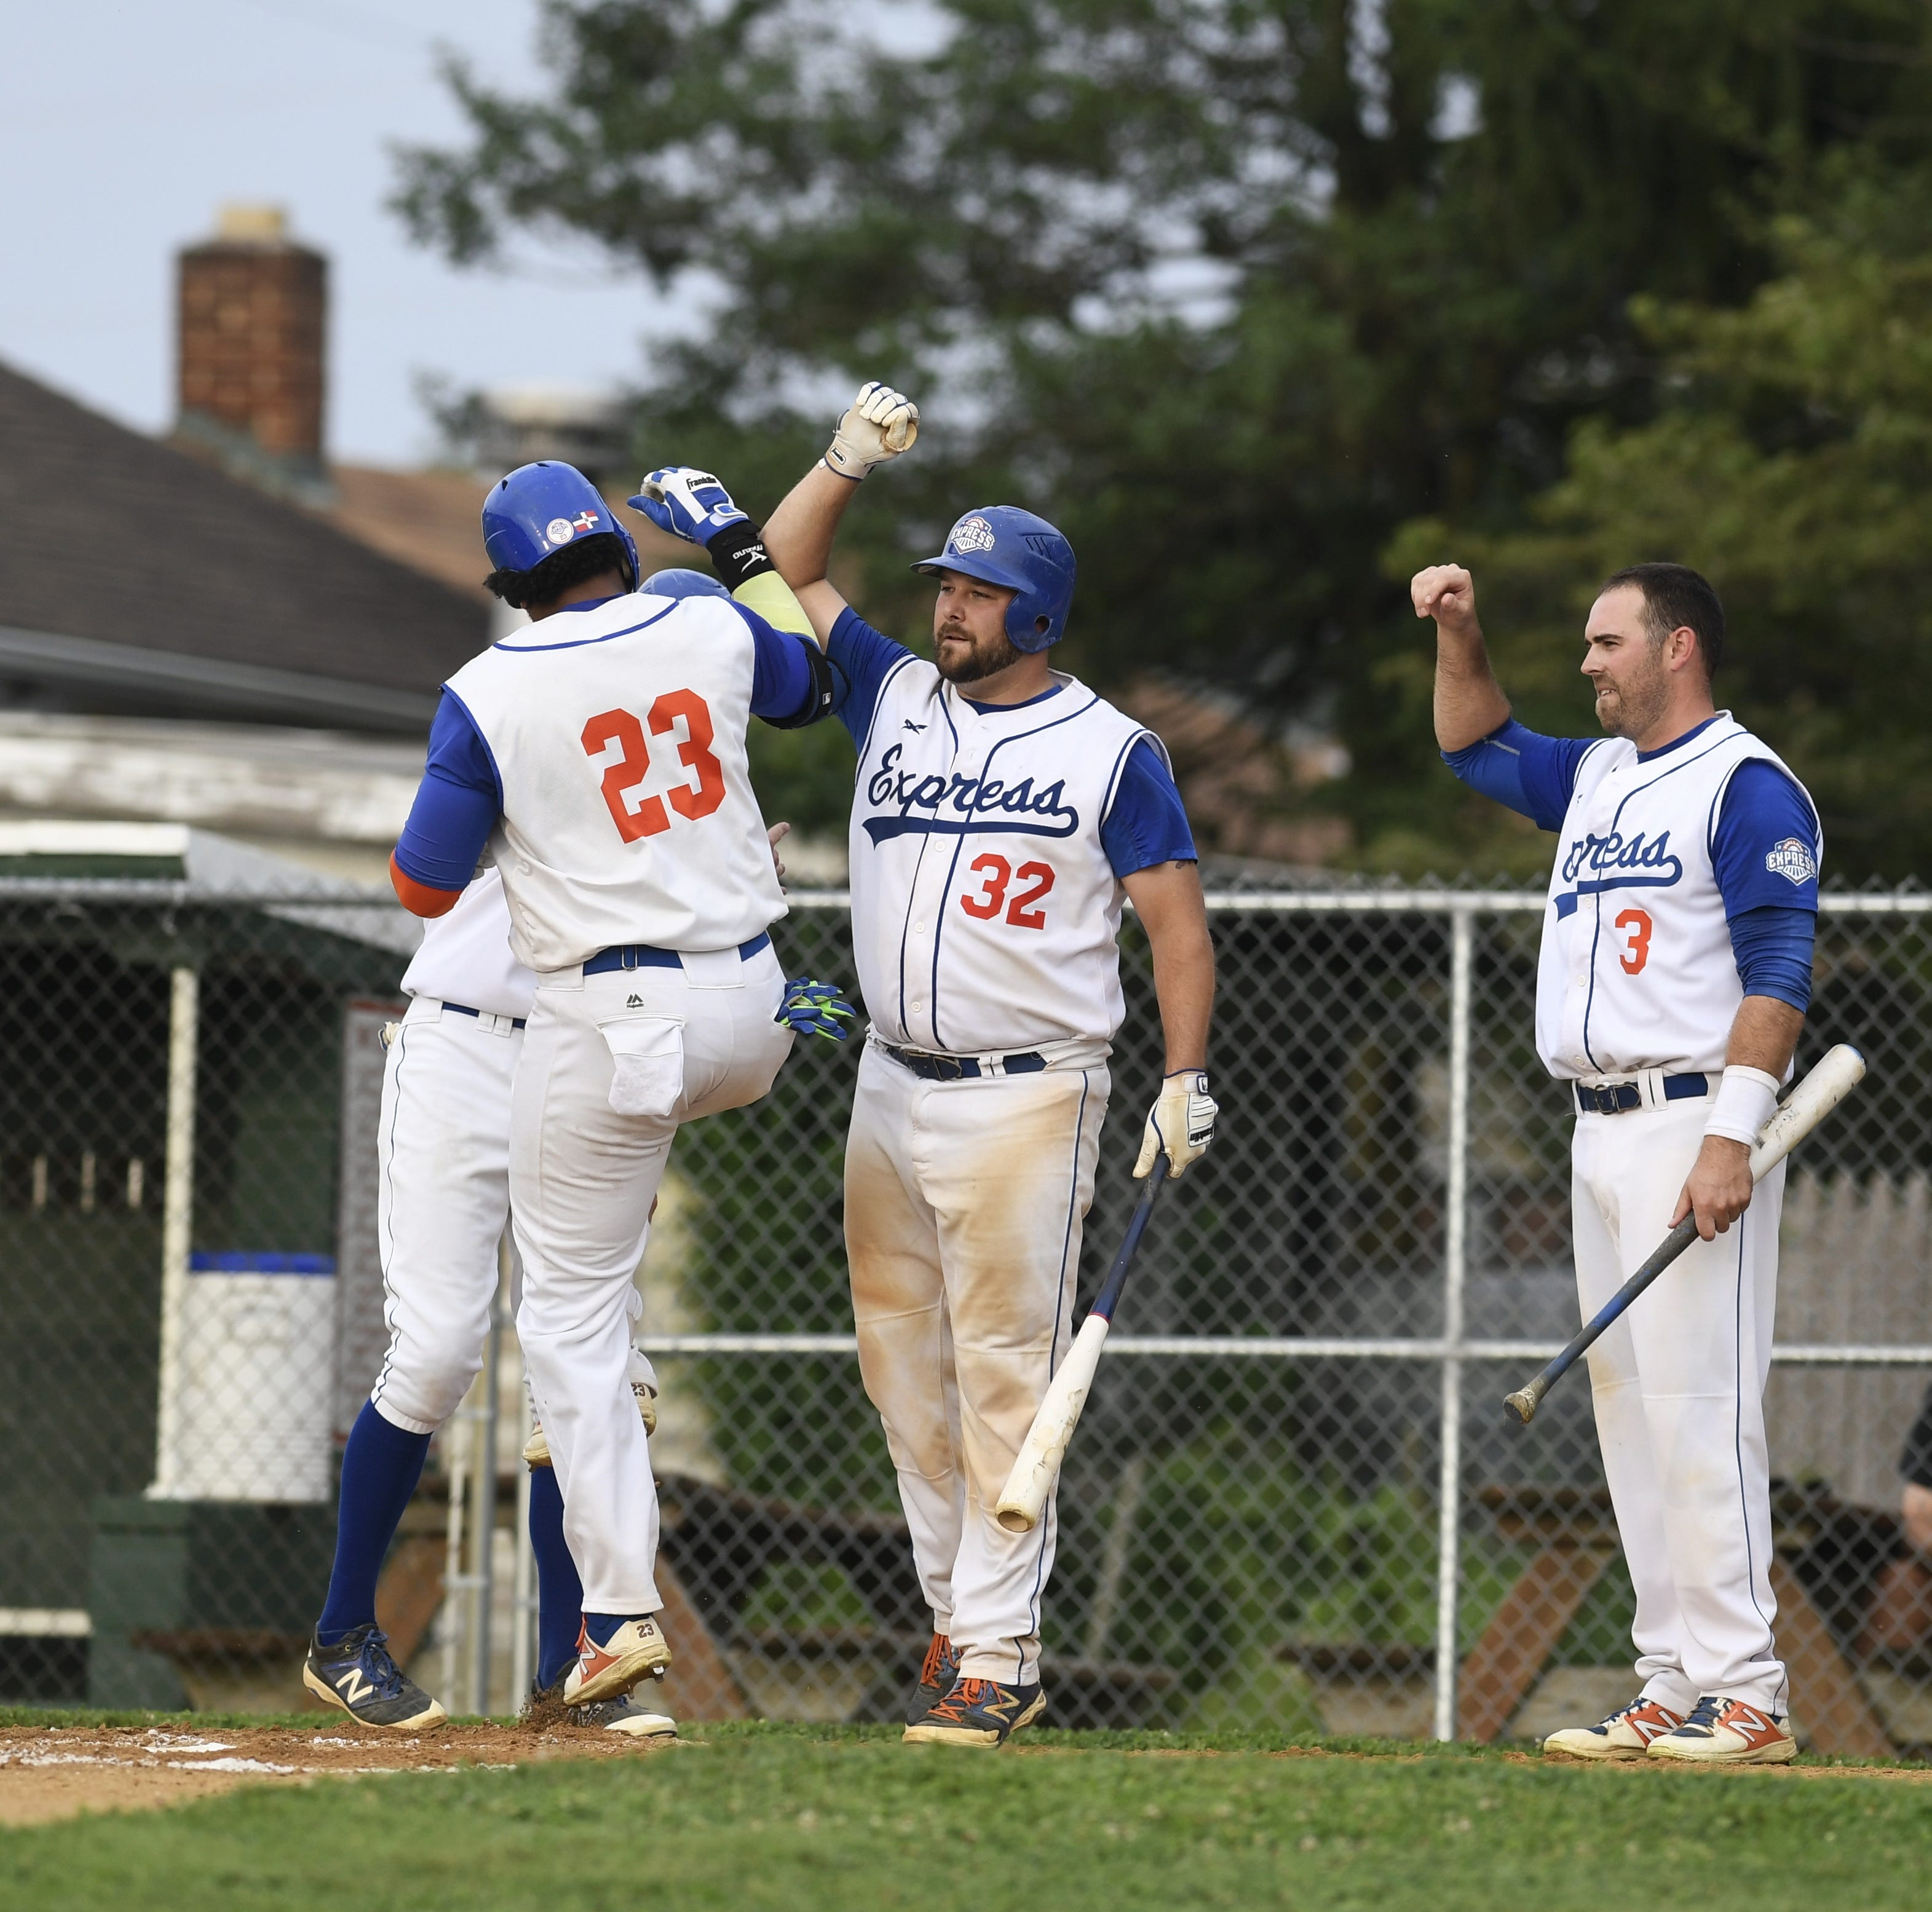 BASEBALL PLAYOFFS: Hallam forces Game 3 in Susquehanna semifinal series vs. York Township